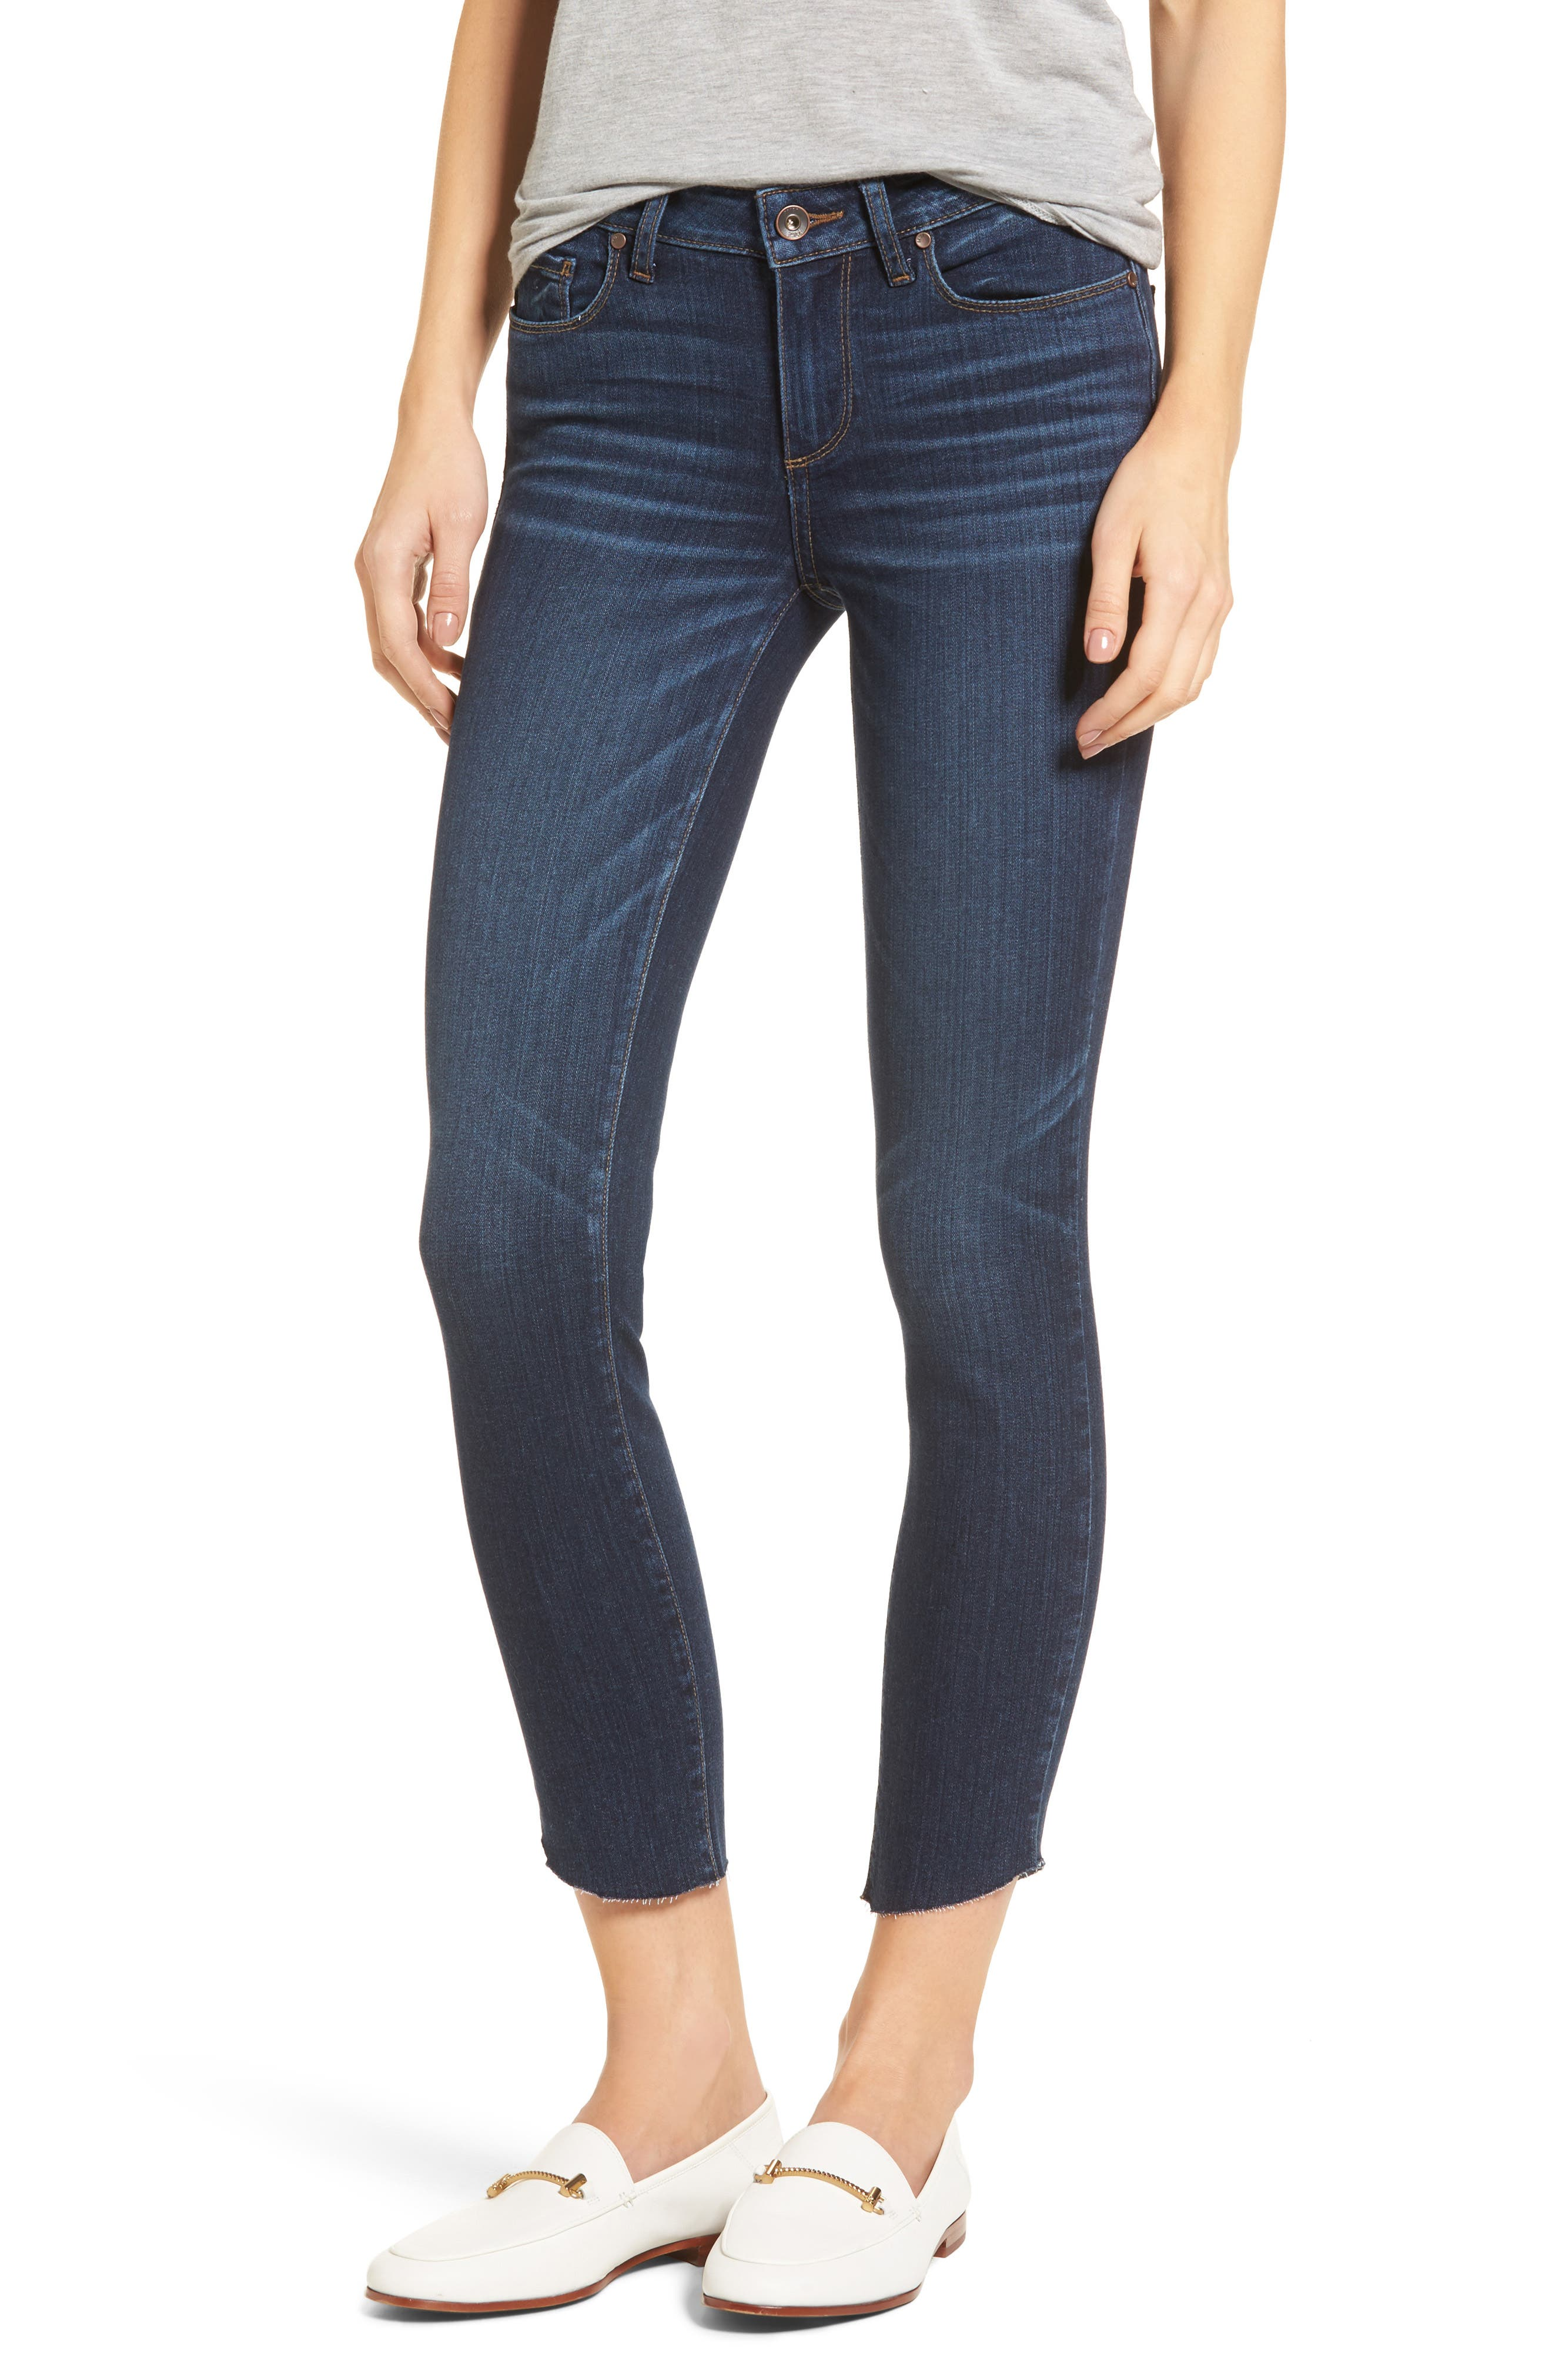 Transcend - Verdugo Ankle Ultra Skinny Jeans,                             Main thumbnail 1, color,                             Oaklyn